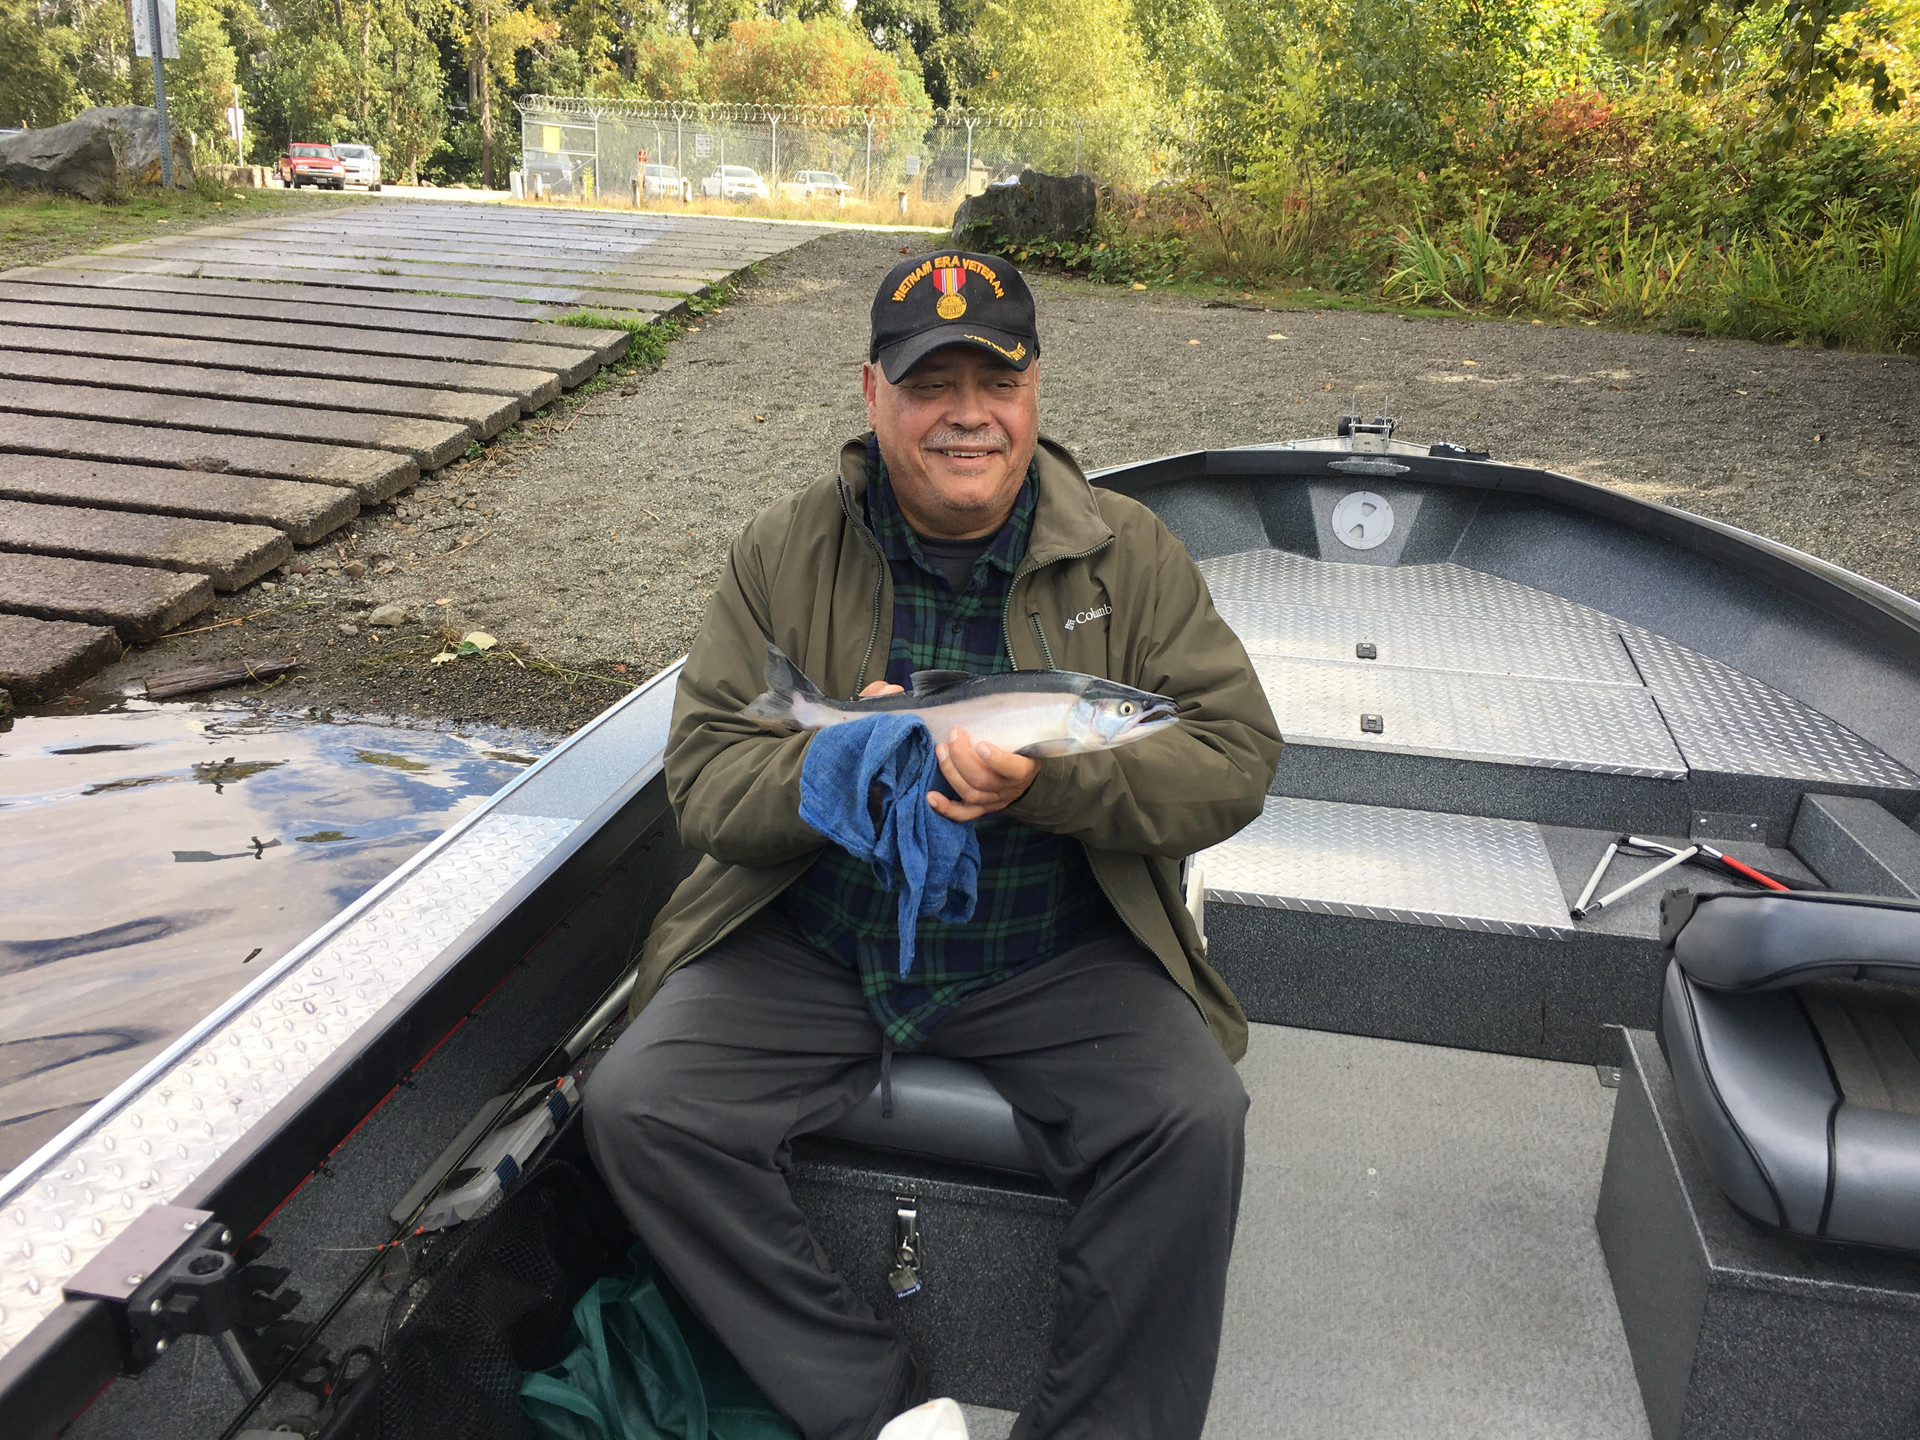 Ernie on the Cowlitz